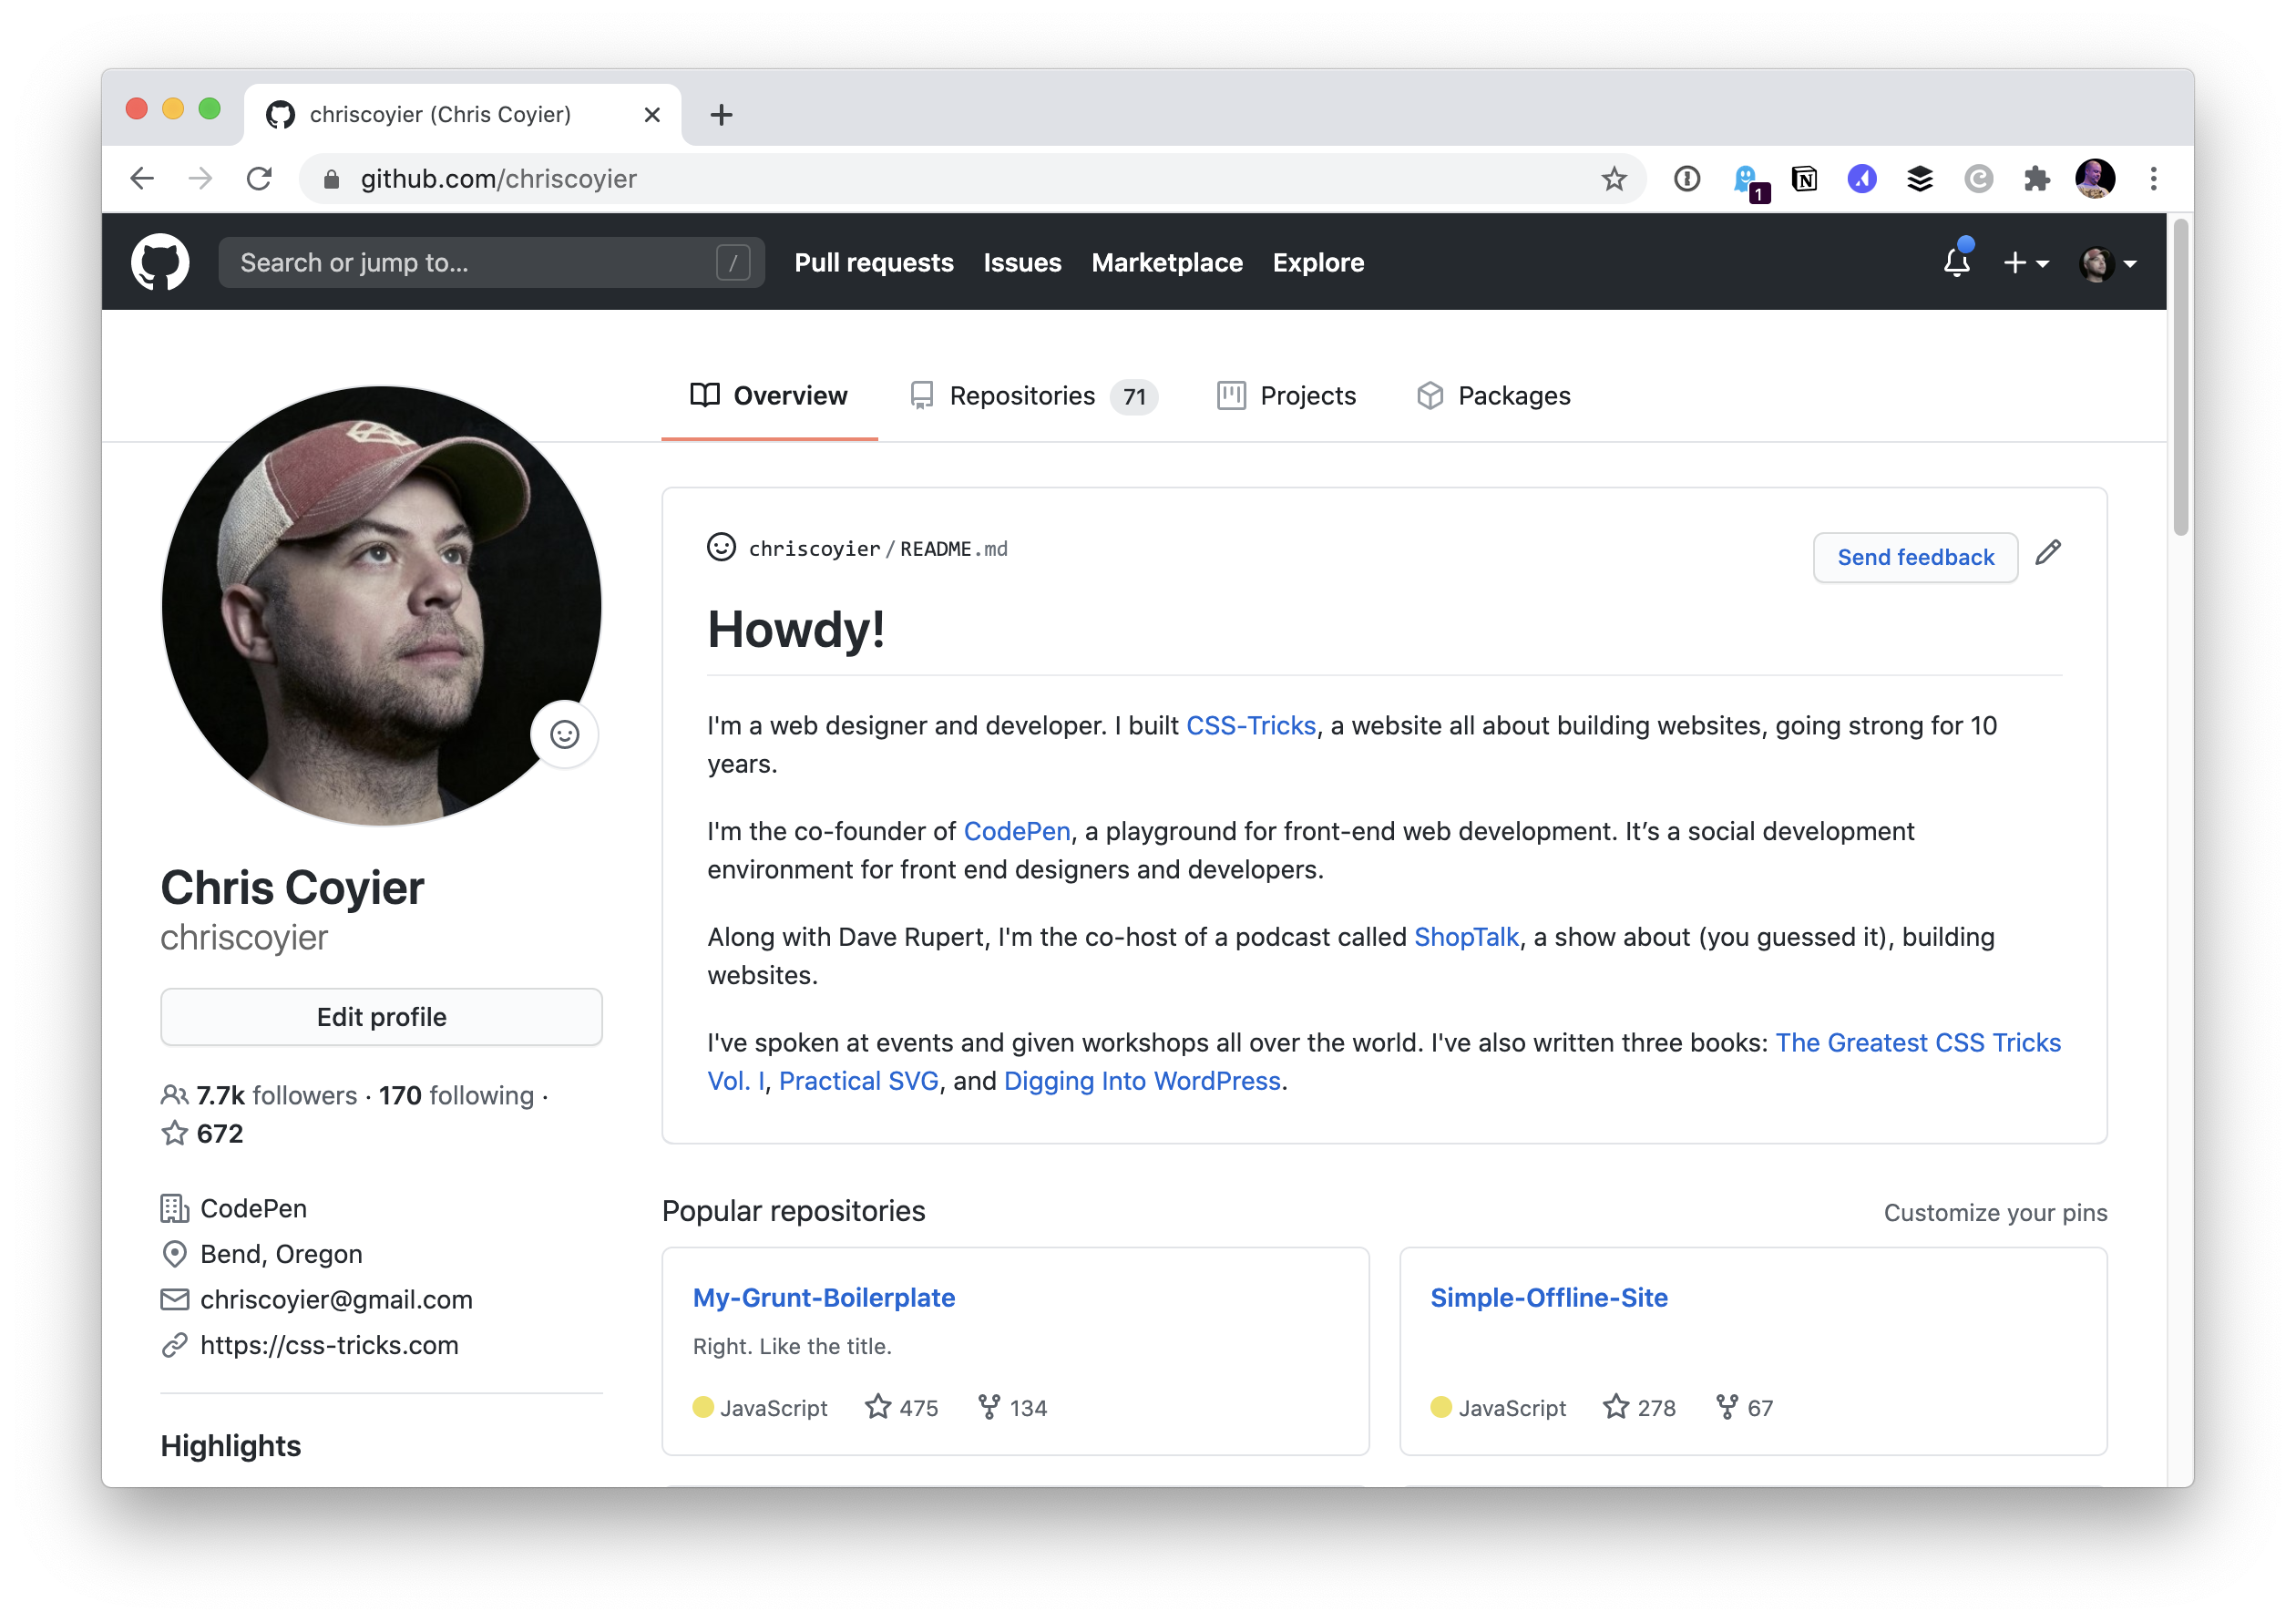 Screenshot of the updated GitHub profile page, showing the welcome text from the personal website homepage.